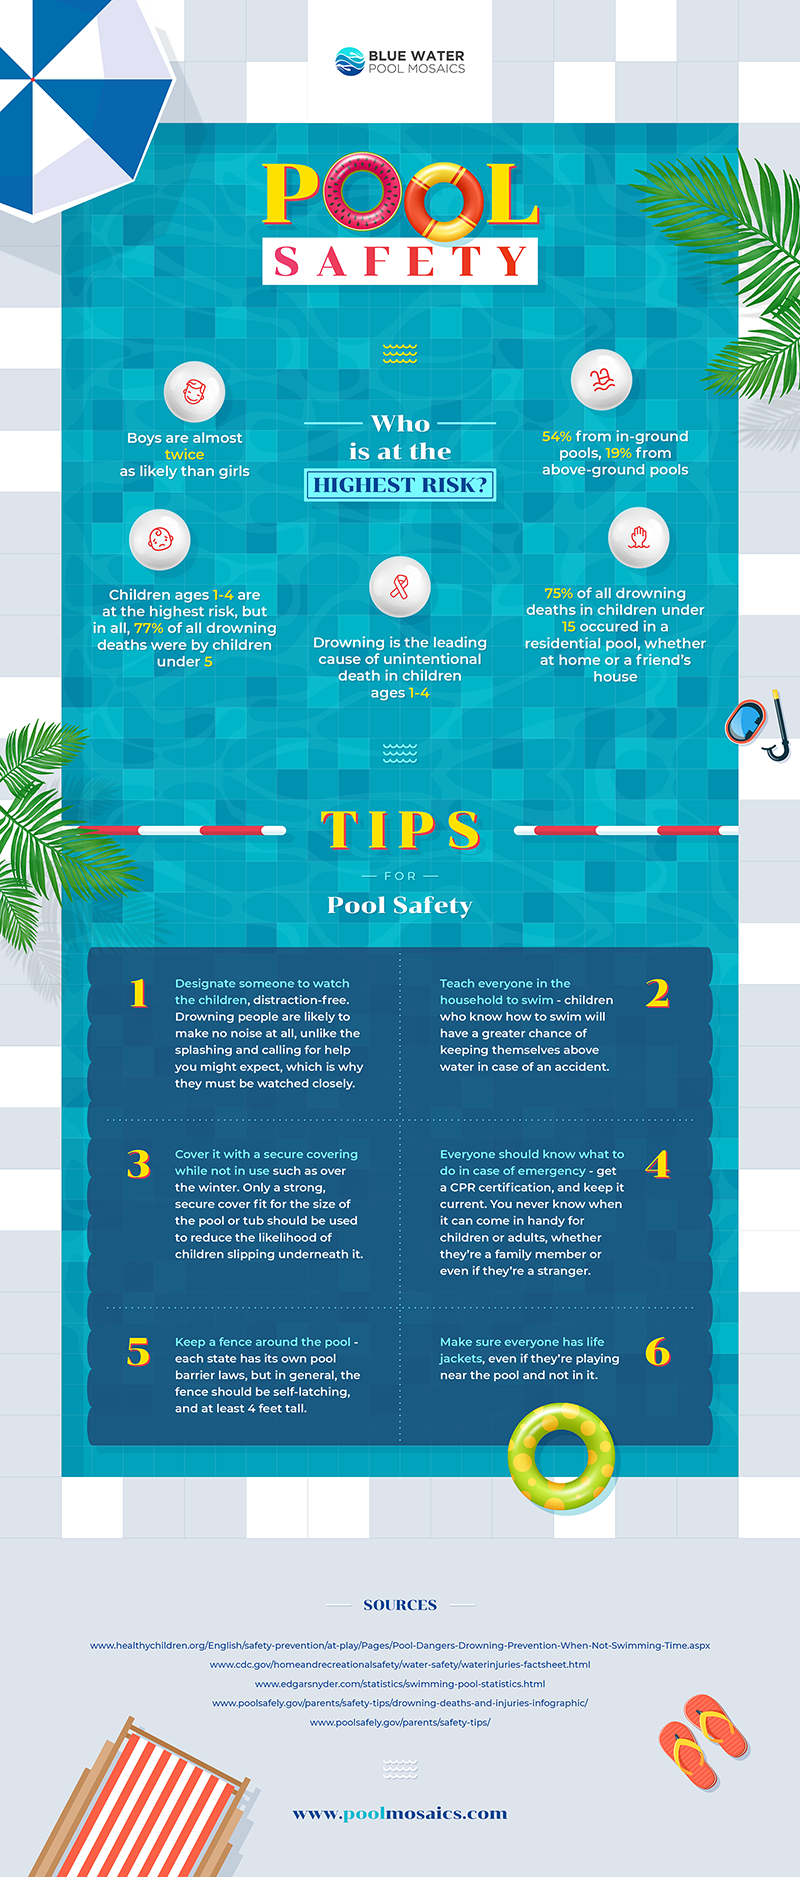 Pool Safety Tips 101: How to Keep the Kids Safe This Summer